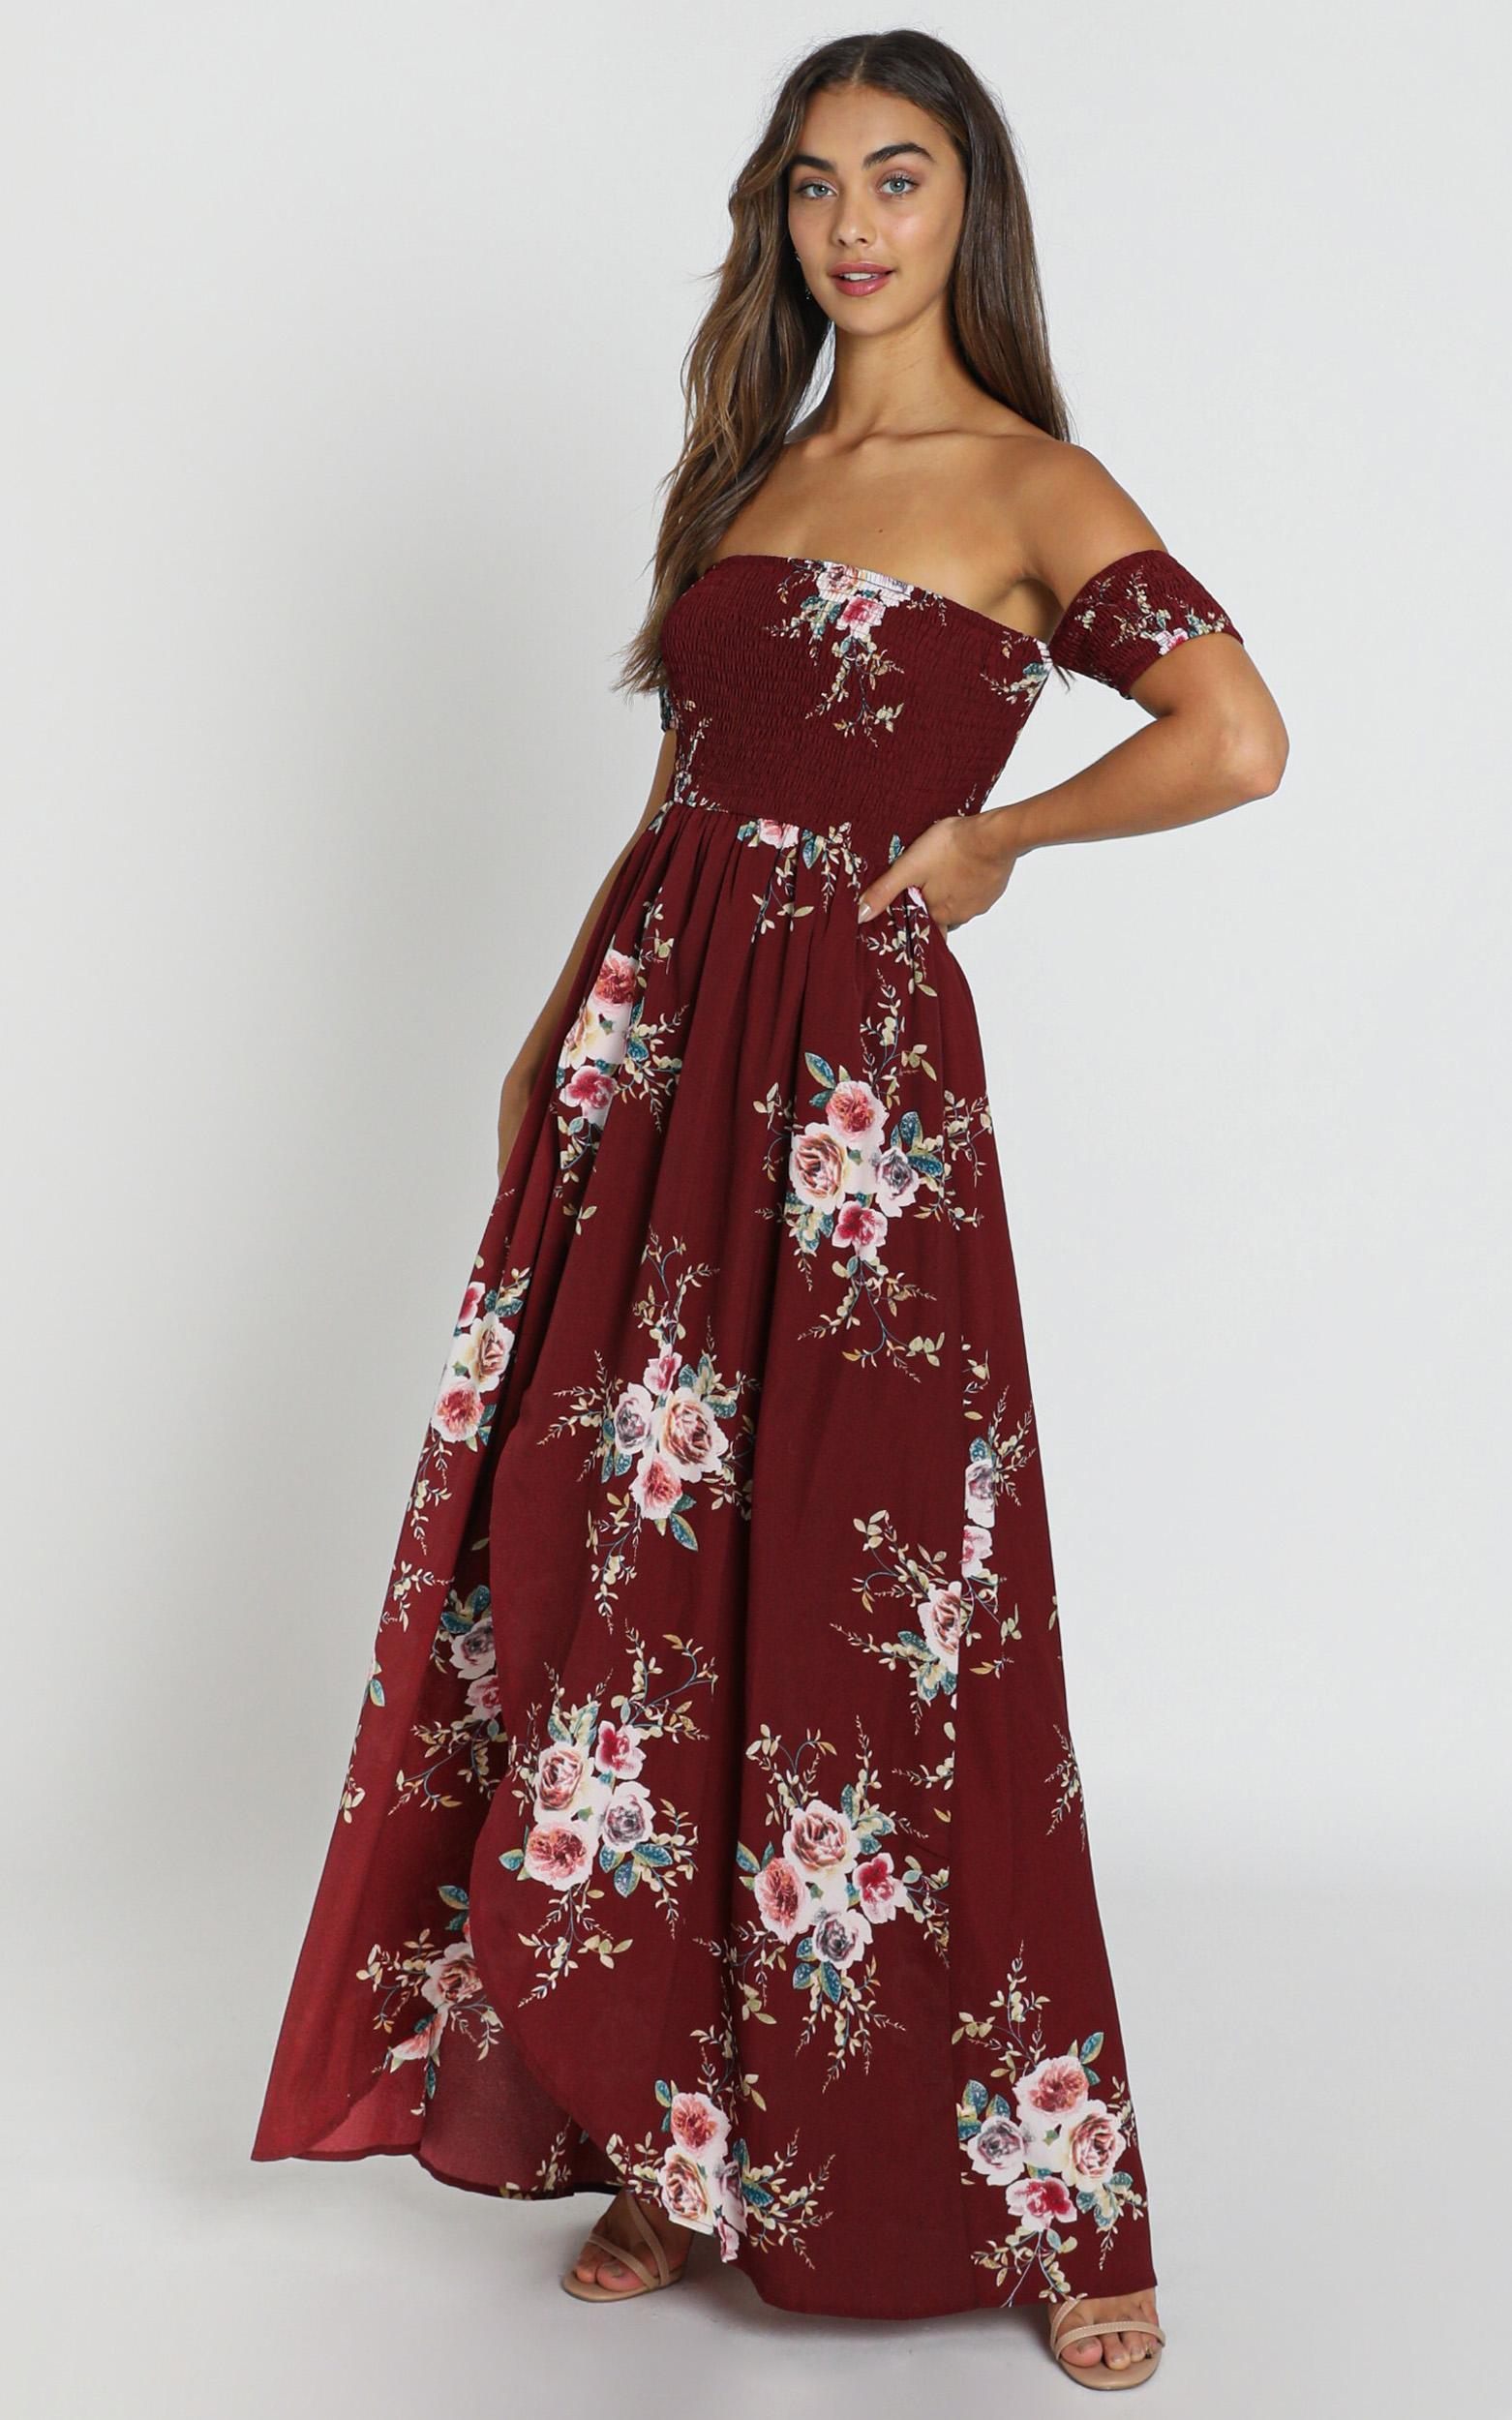 Lovestruck Maxi Dress in wine floral - 6 (XS), Wine, hi-res image number null